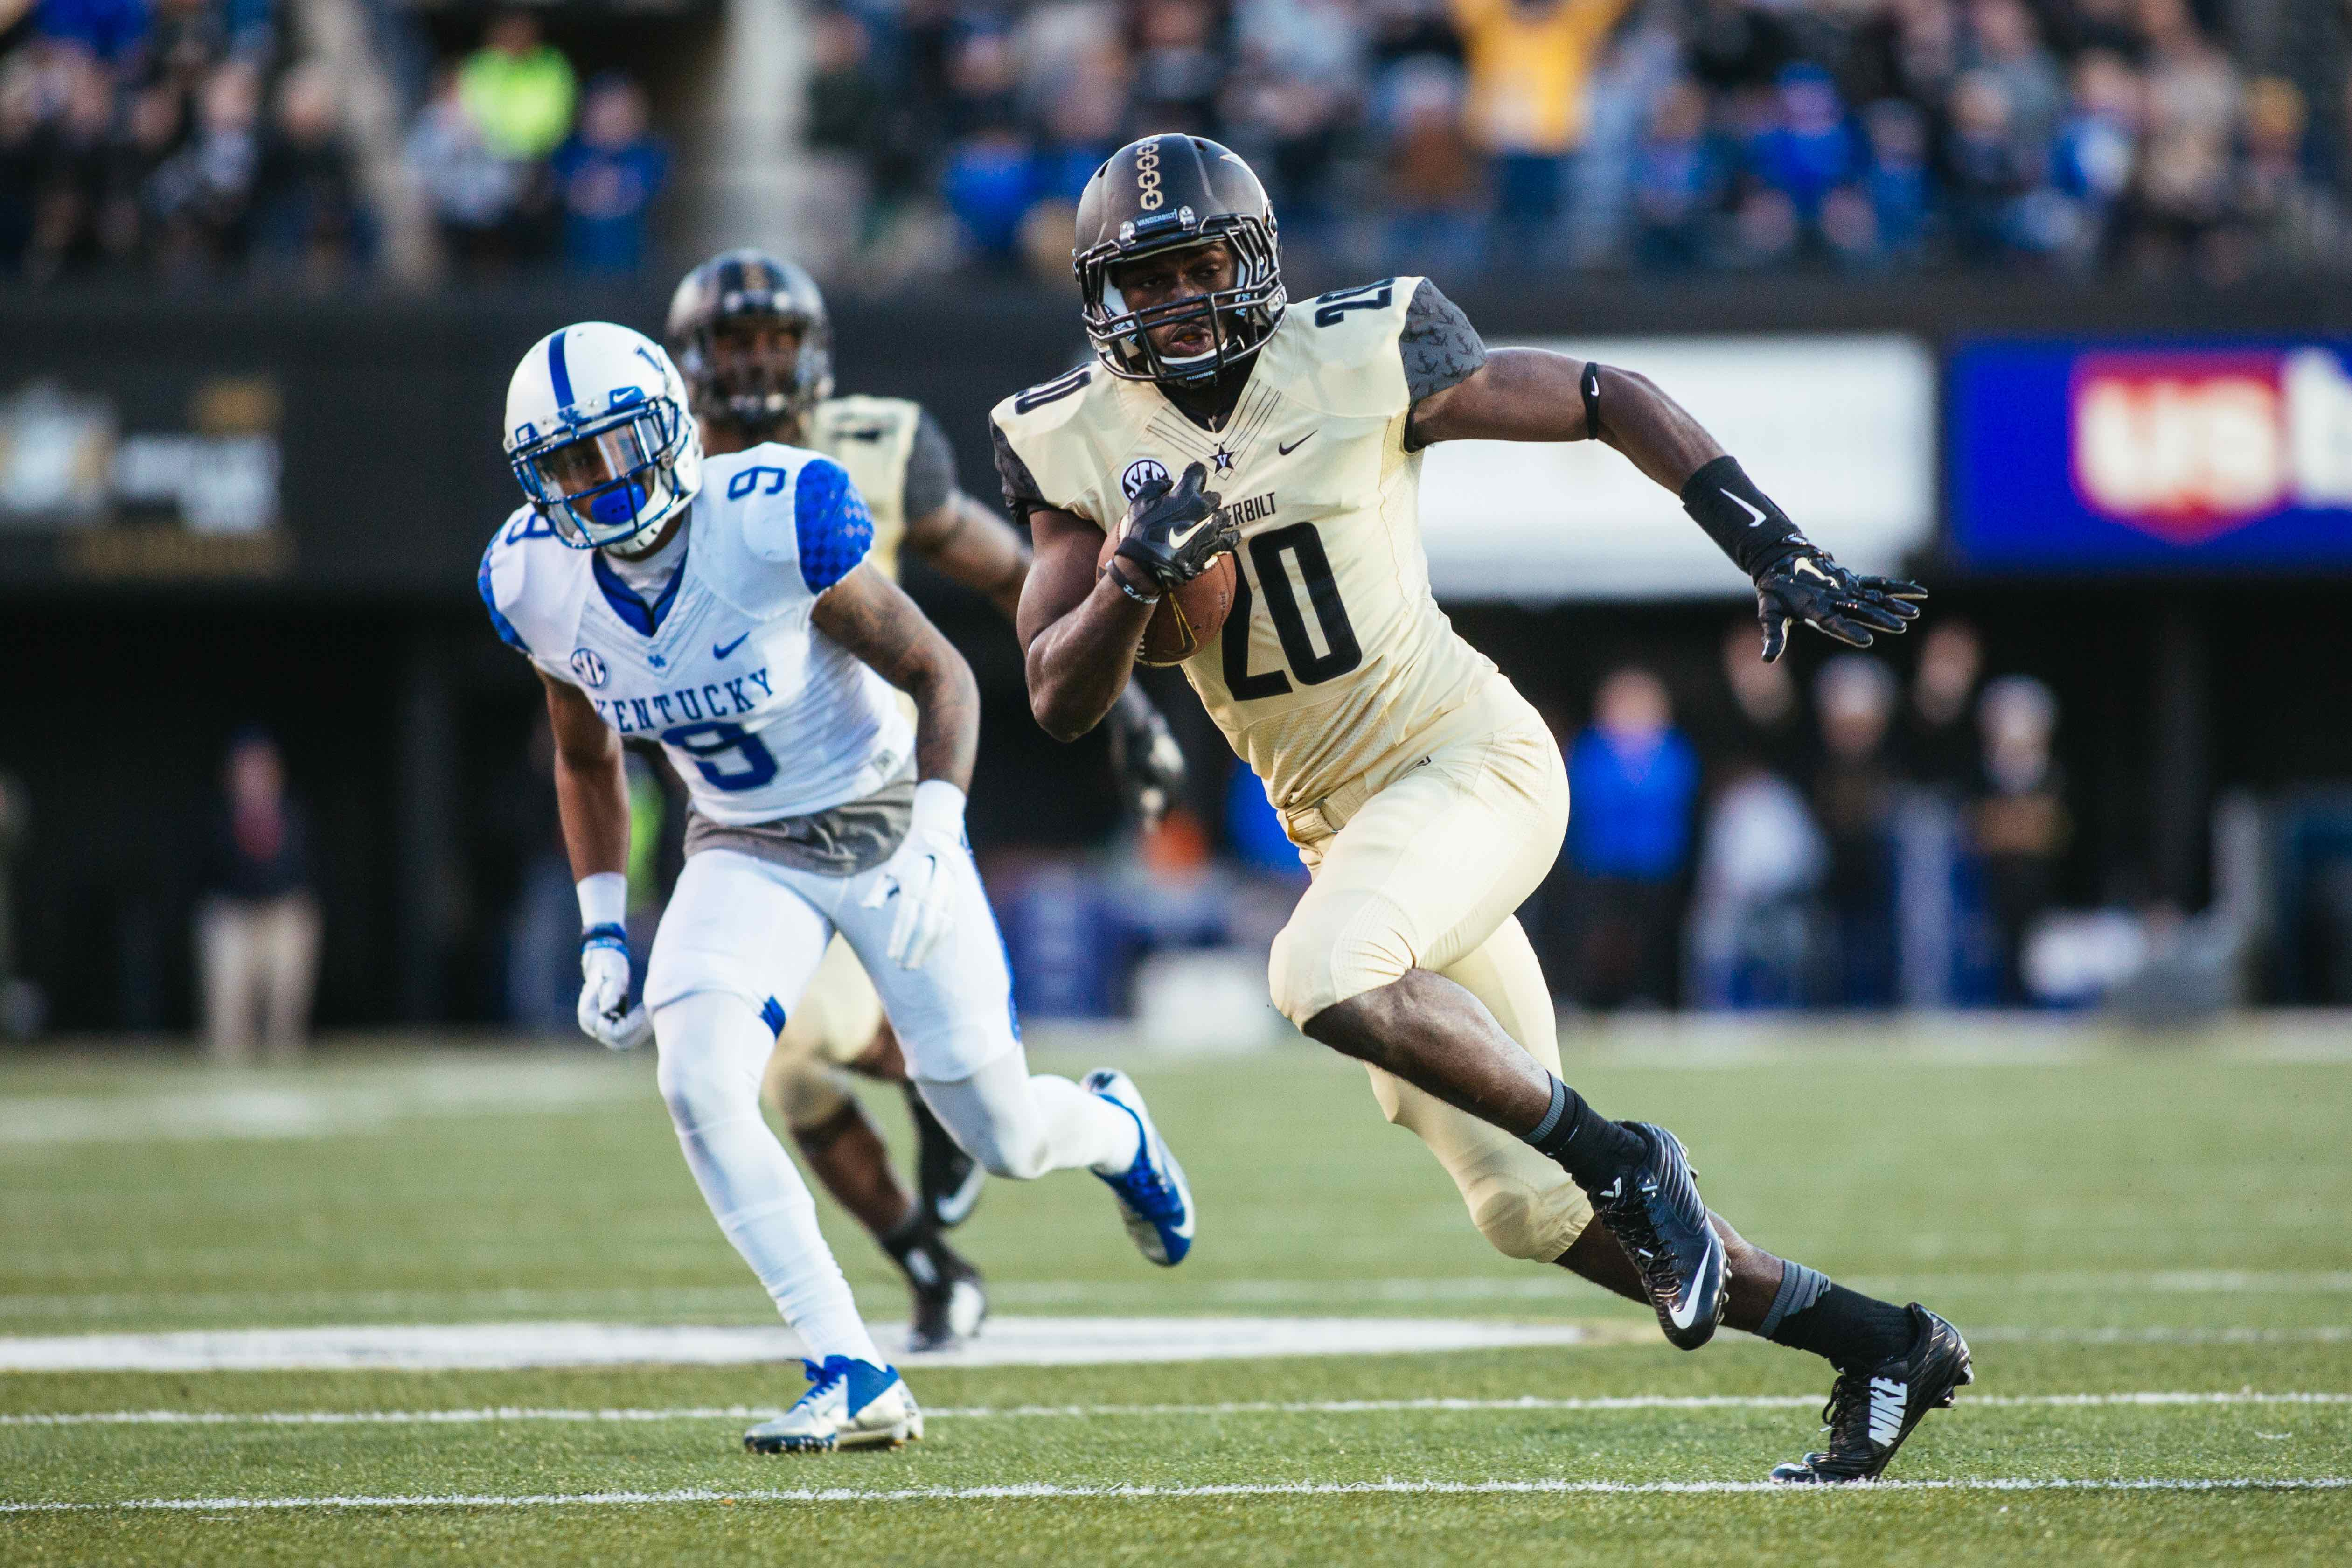 Vanderbilt defeats Kentucky 21-17 at Vanderbilt Stadium on November 14, 2015. Photo by Bosley Jarrett.